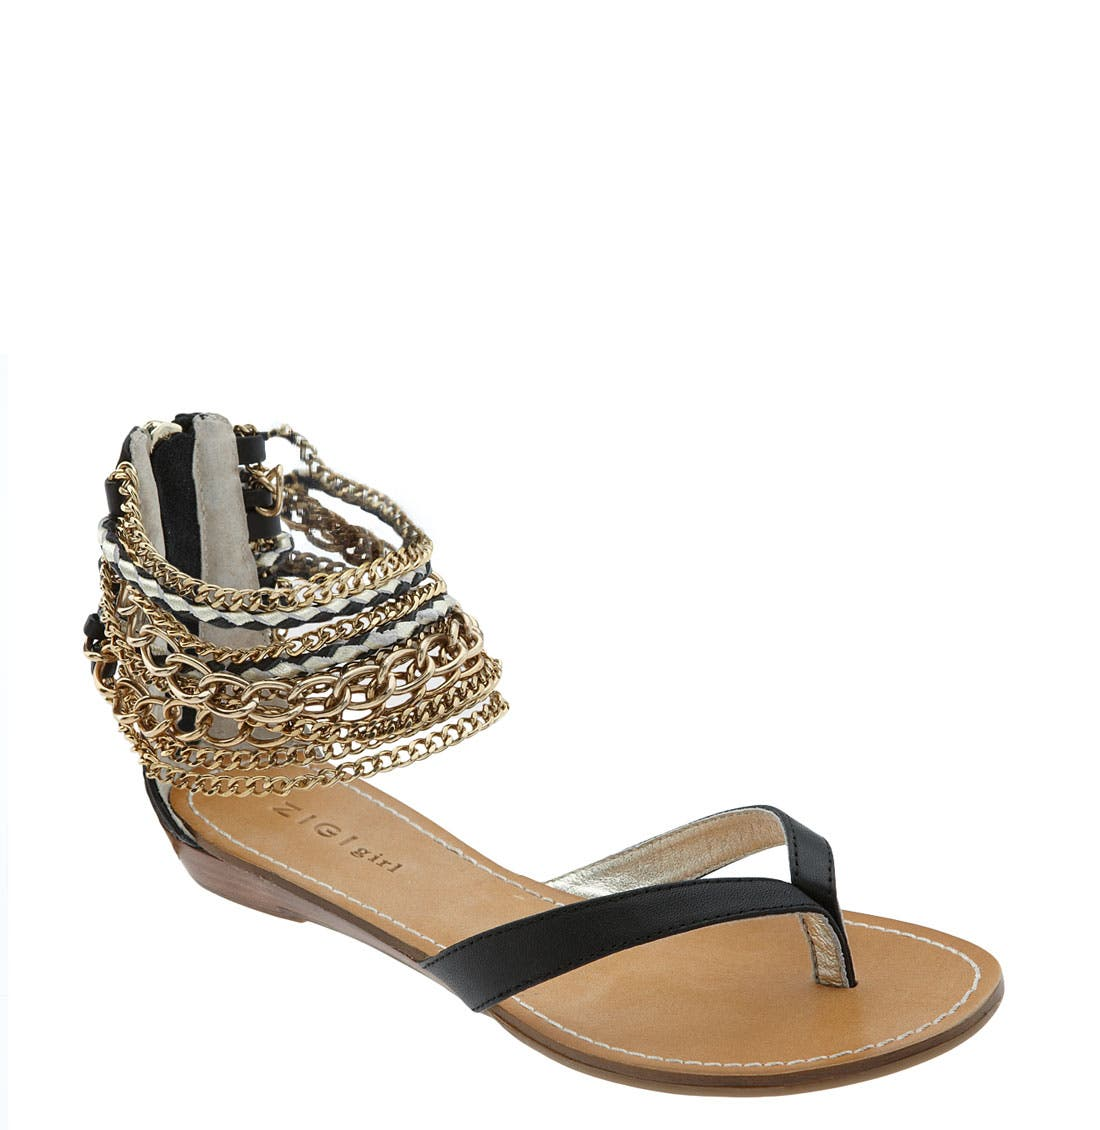 'To Die For' Sandal,                         Main,                         color, 012